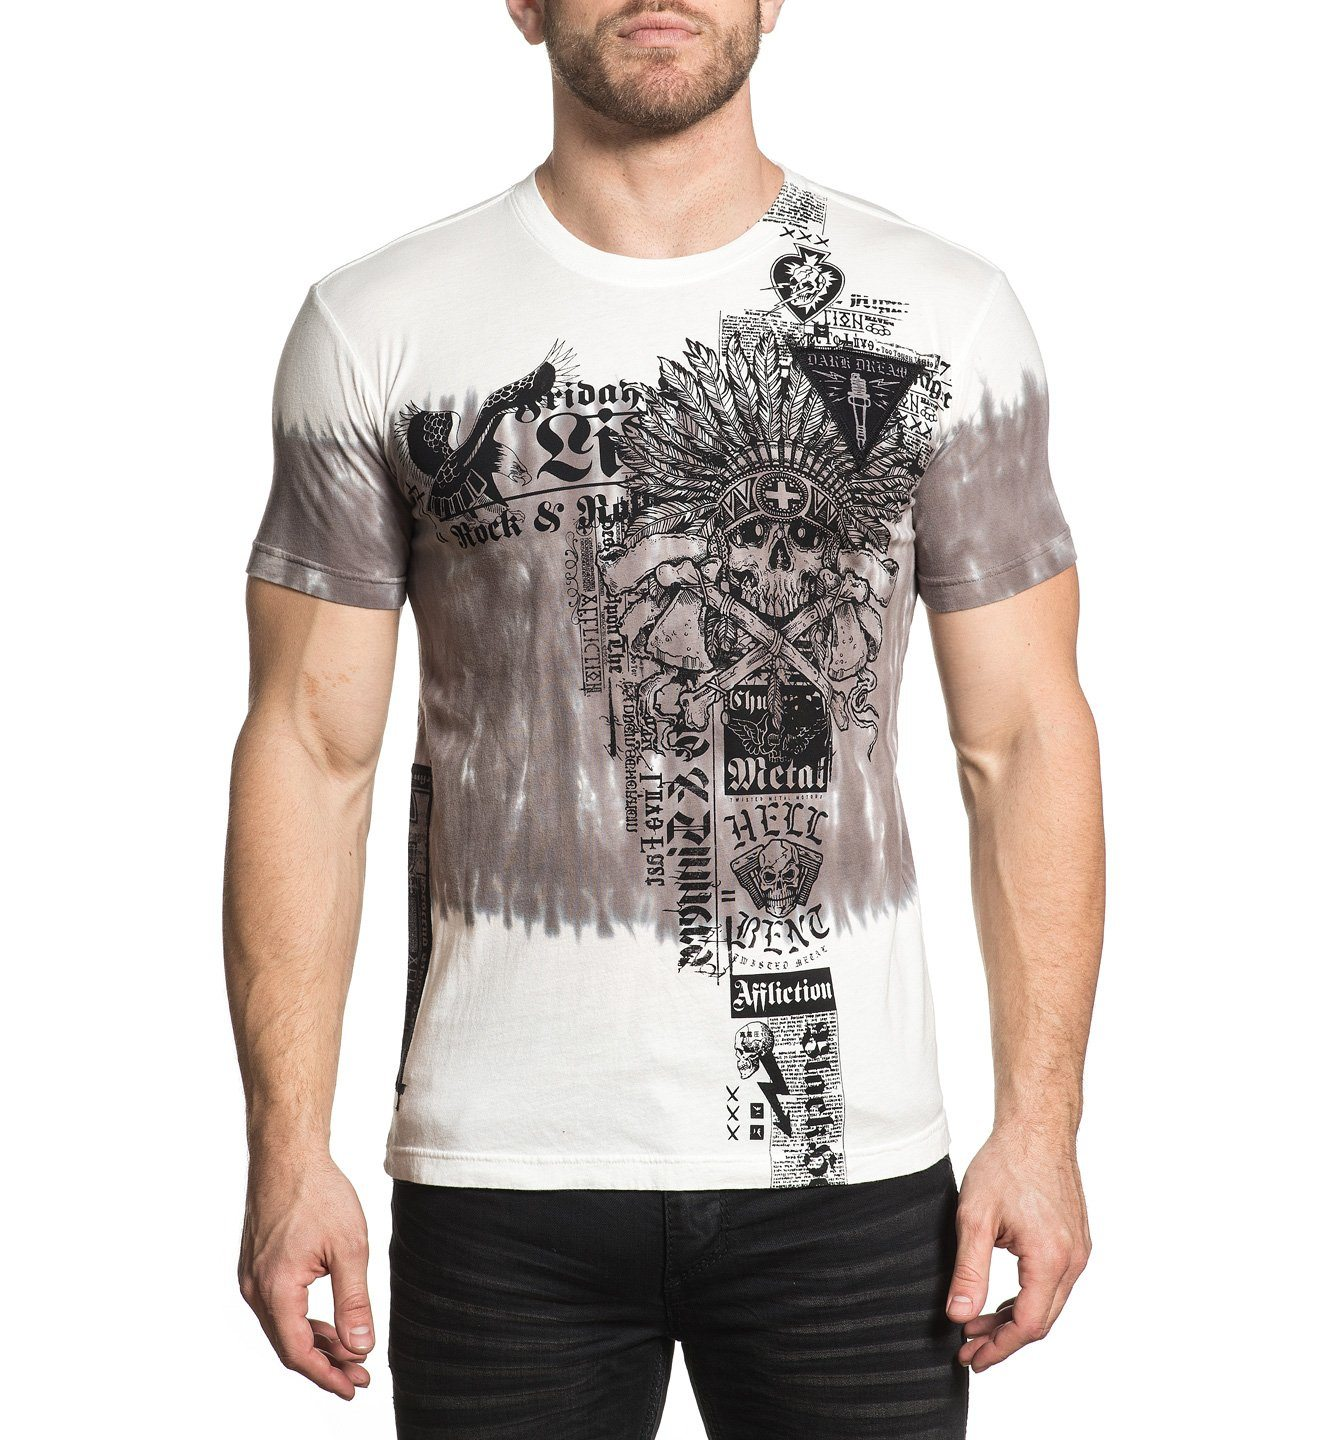 Damage Case - Mens Short Sleeve Tees - Affliction Clothing